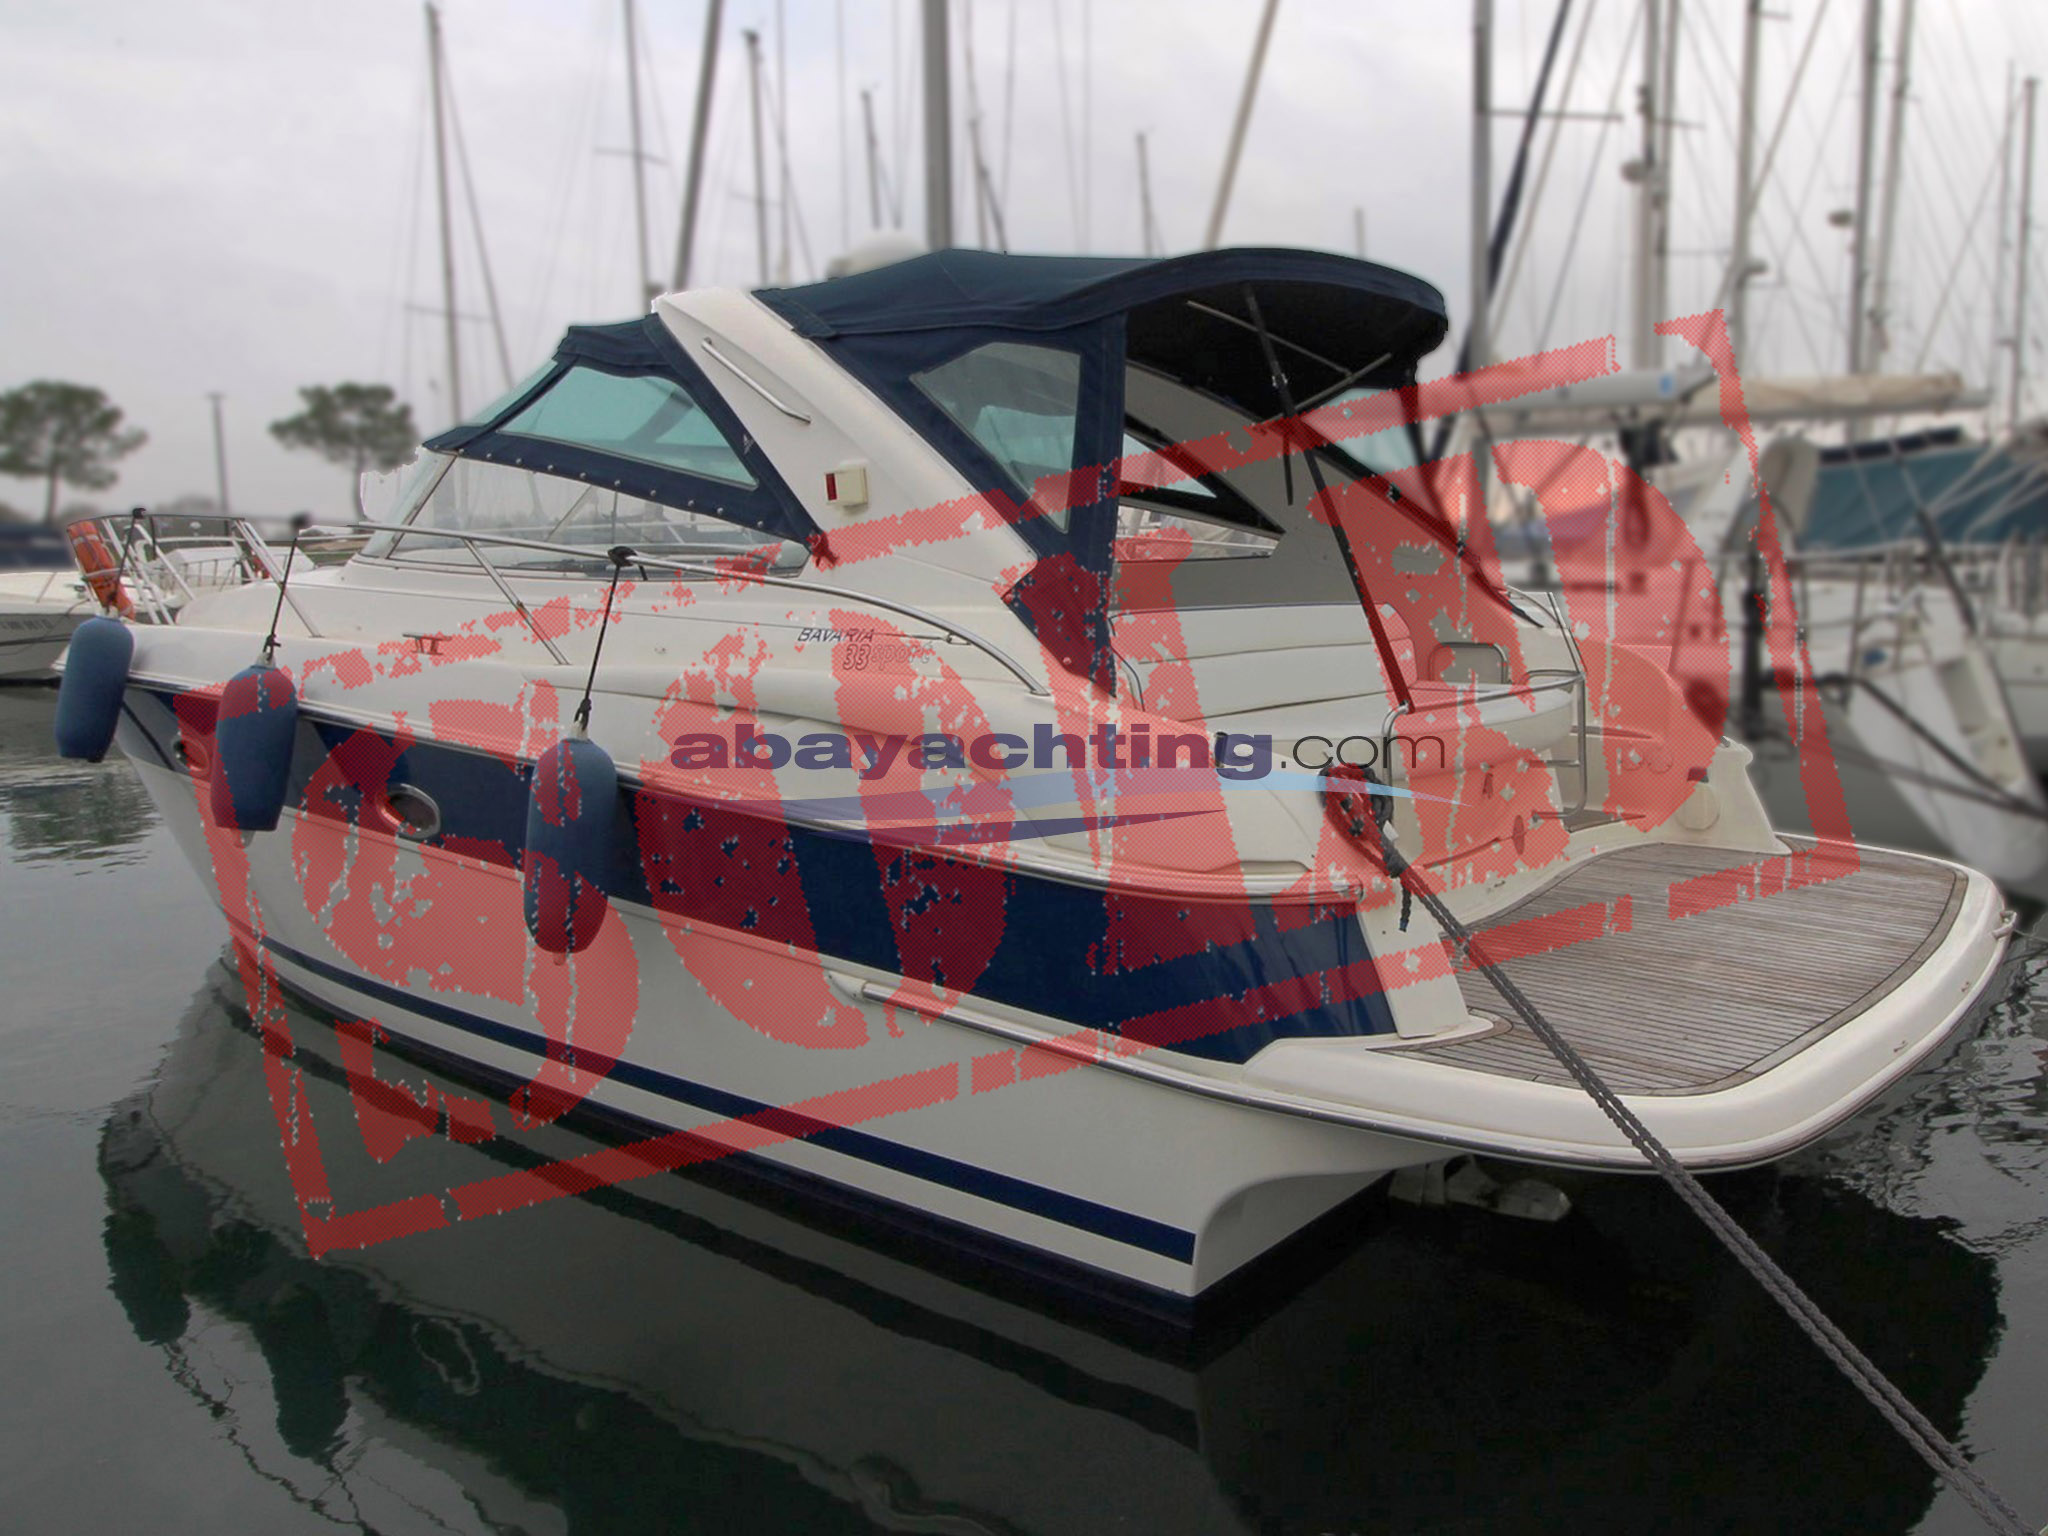 Bavaria 33 sold